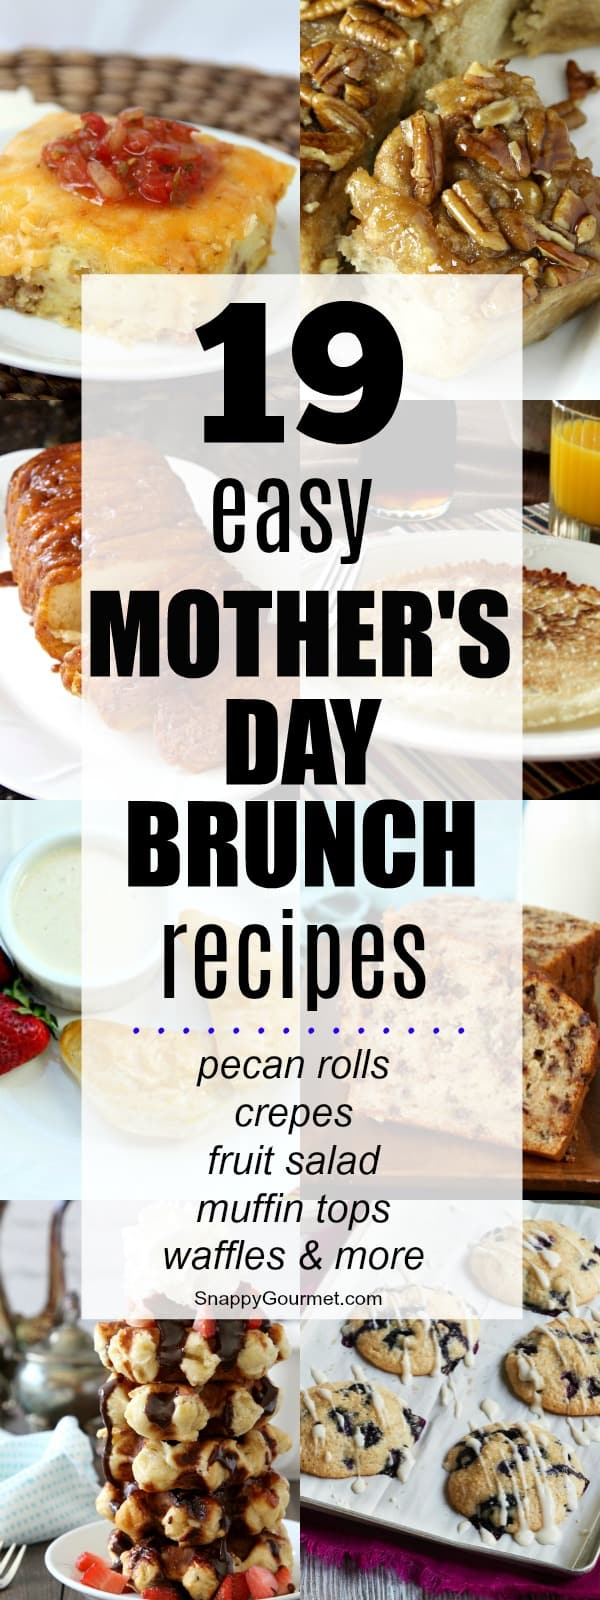 19 easy Mother's Day Brunch Recipes - the best brunch recipes for mom including waffles, monkey bread, strata, pecan rolls, and more! SnappyGourmet.com